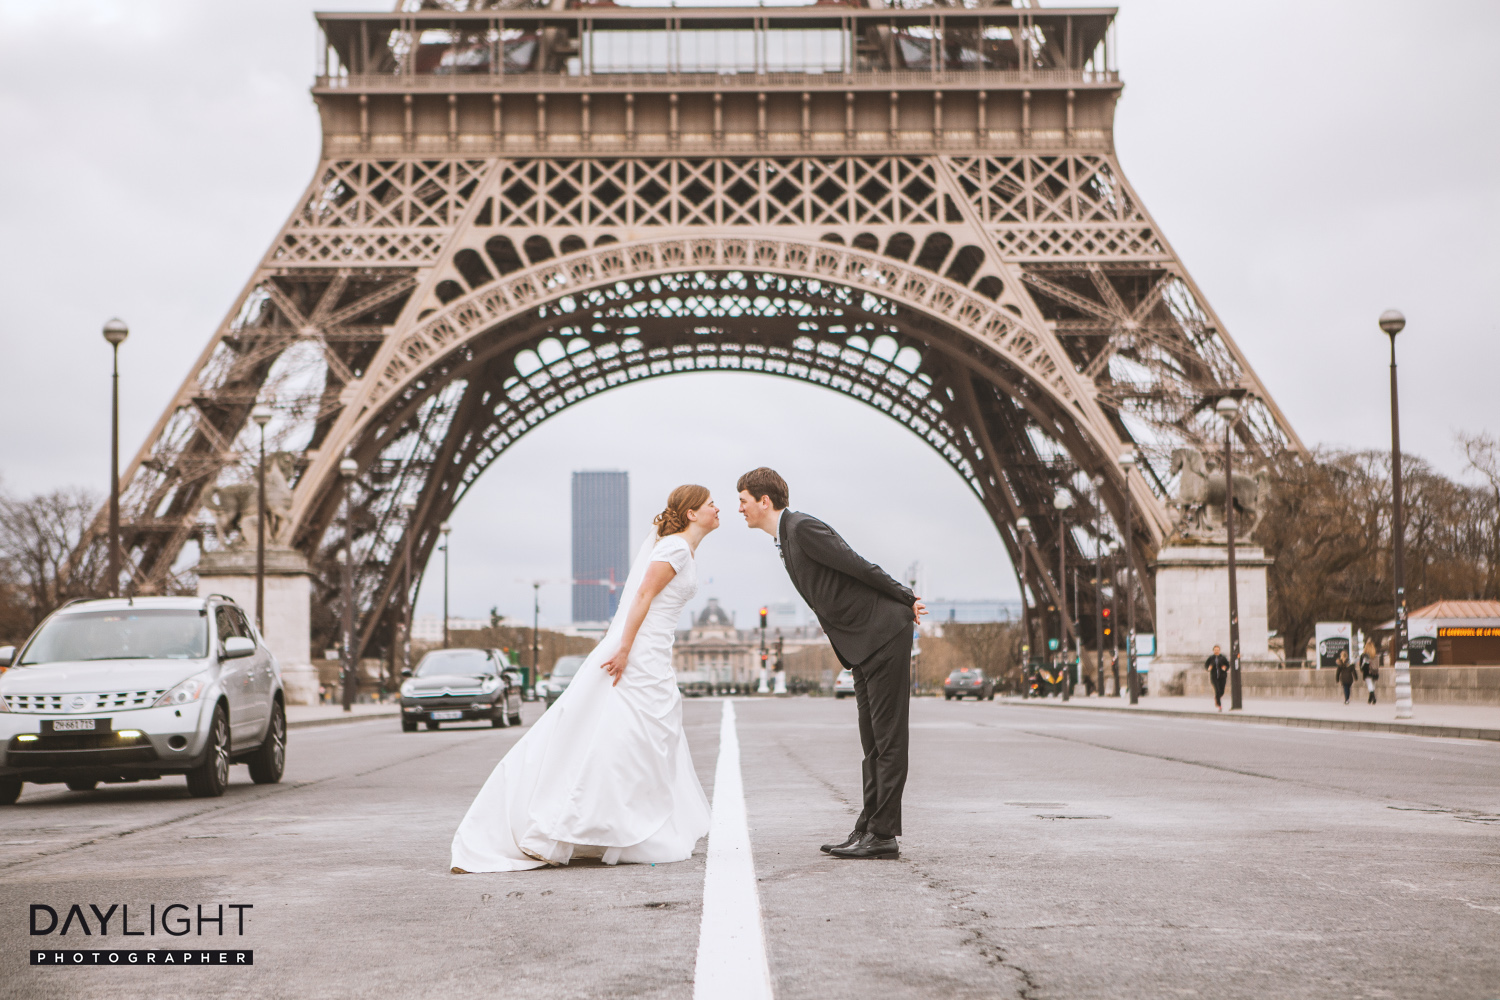 wedding photoshooting in paris